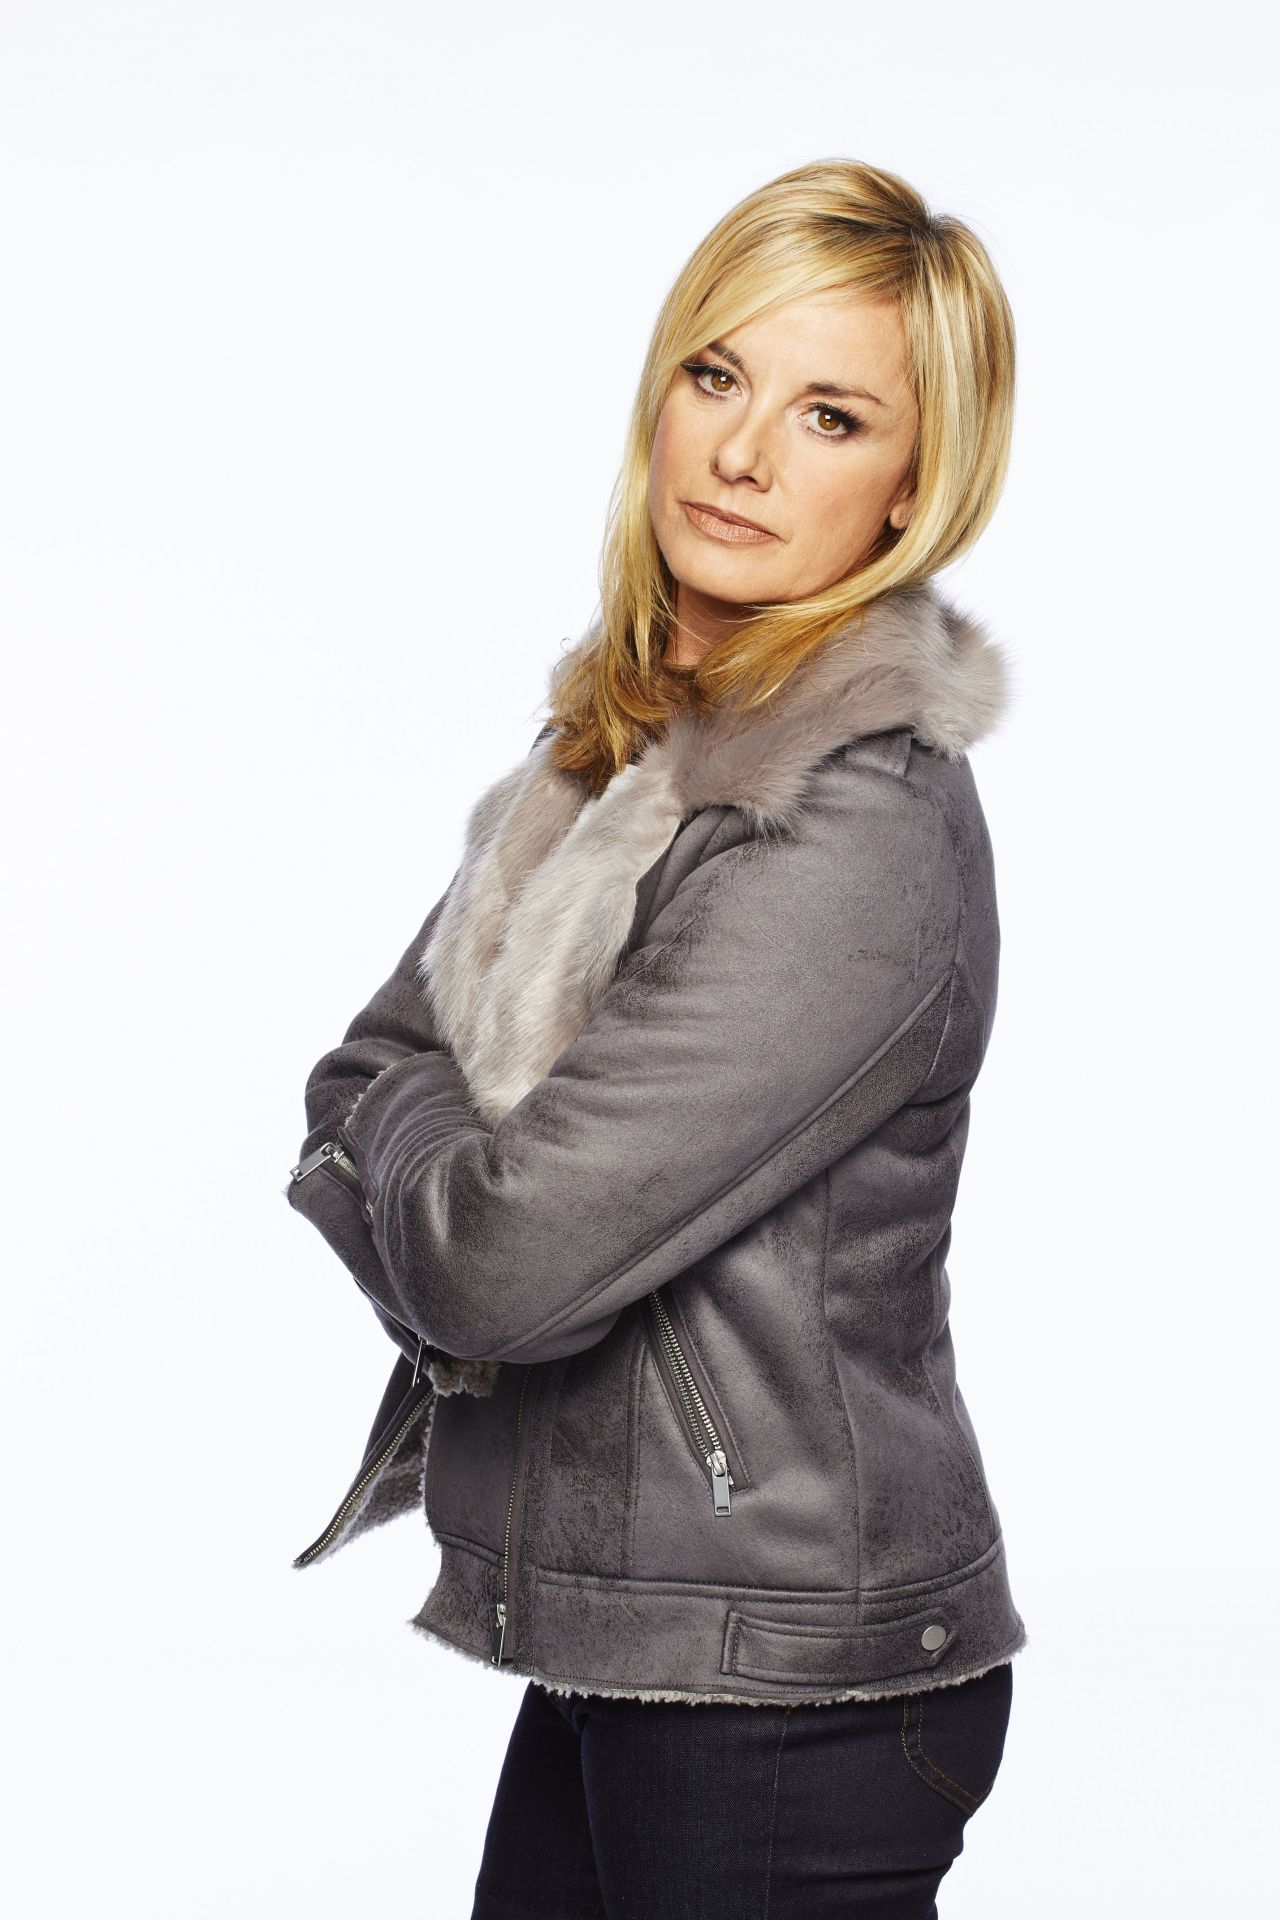 tamzin outhwaite - photo #38